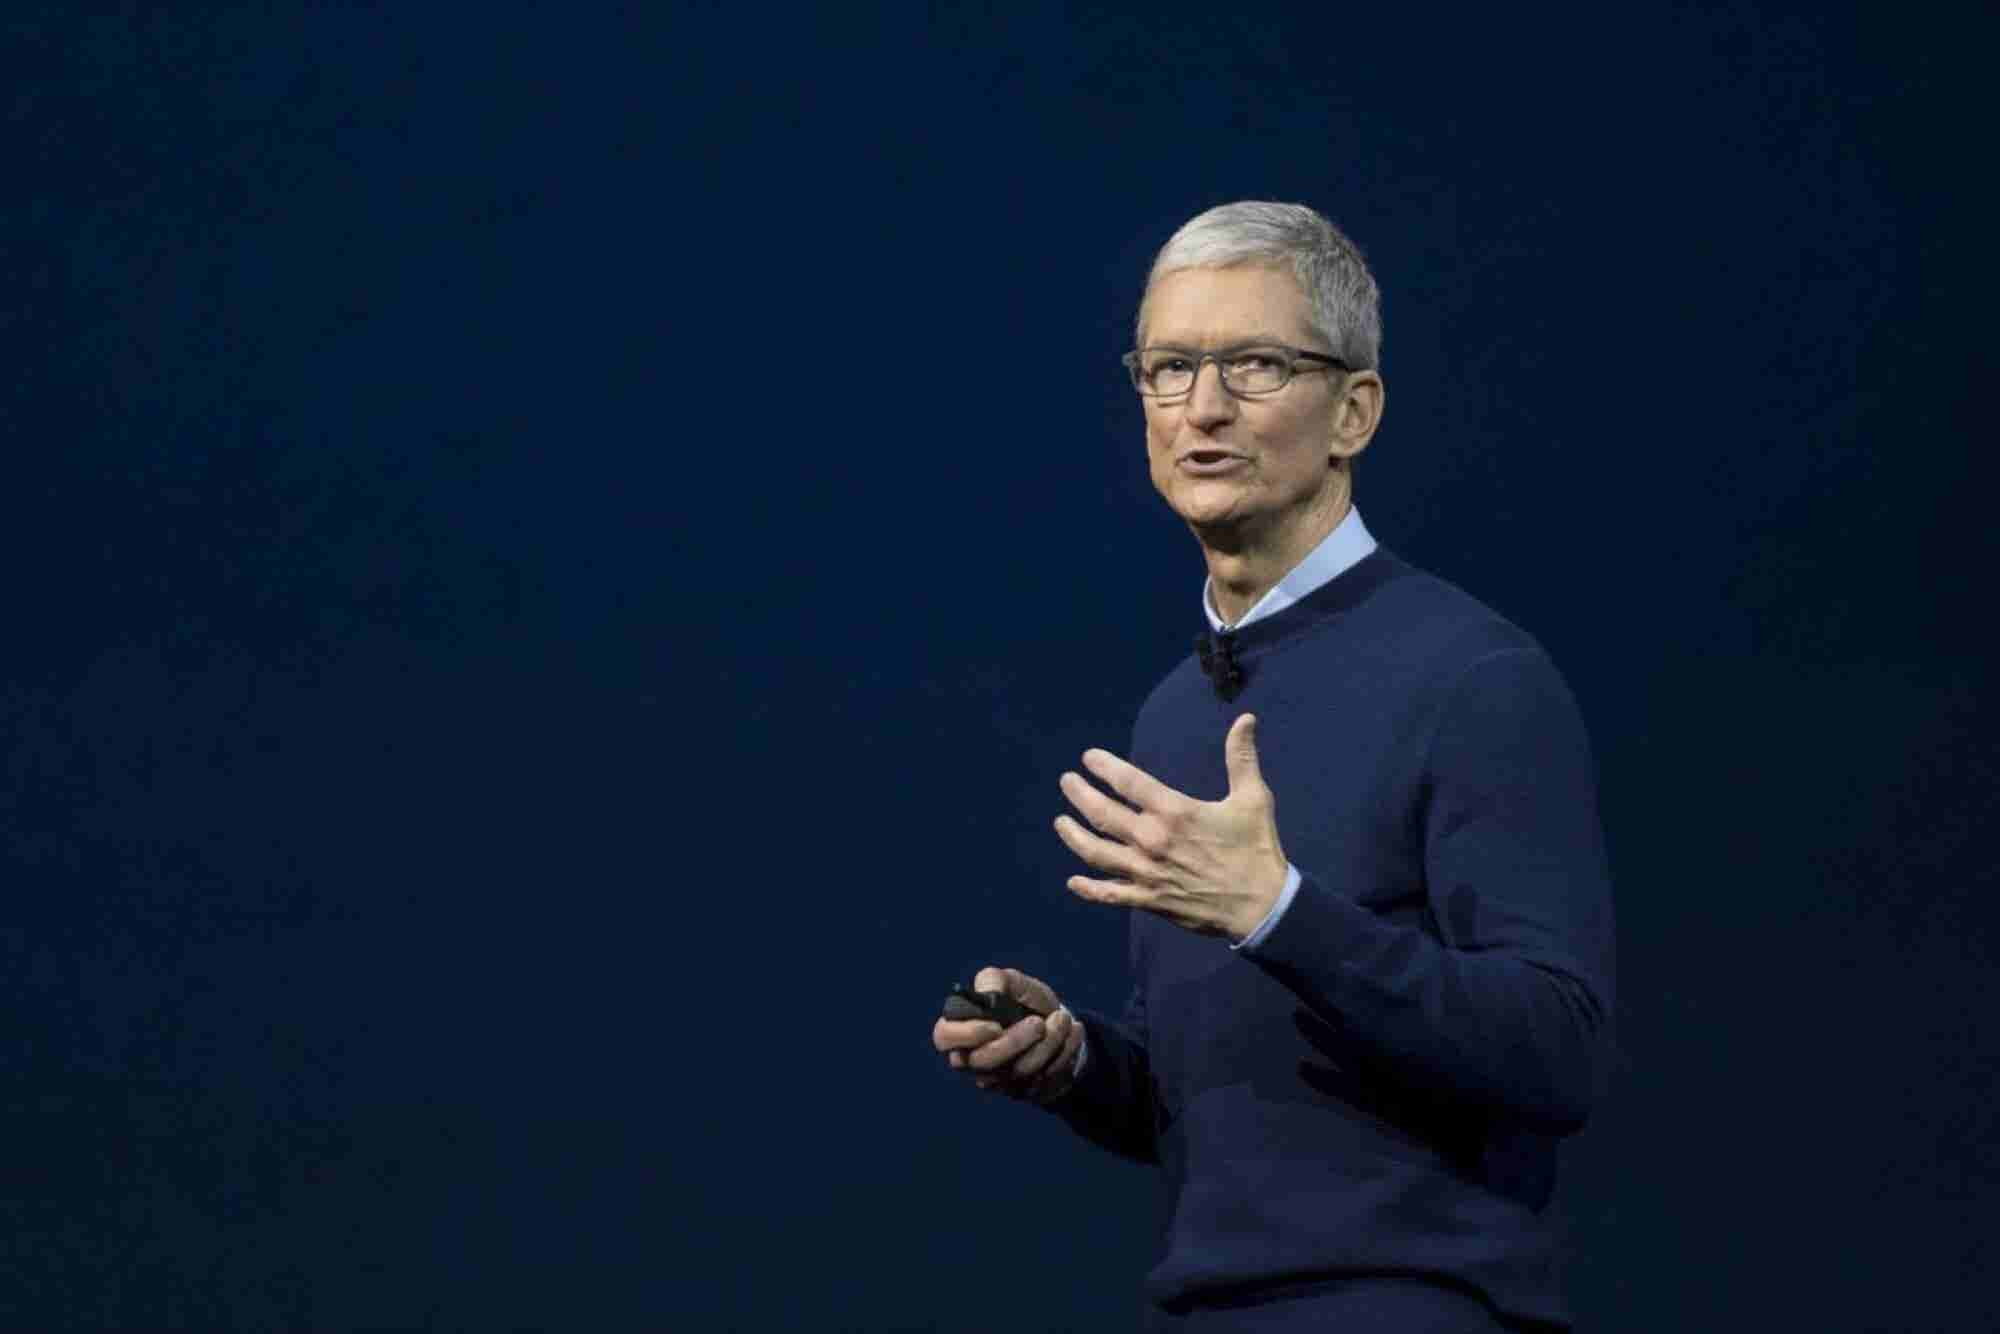 'Hate Is a Cancer,' Apple CEO Writes in Email to Employees